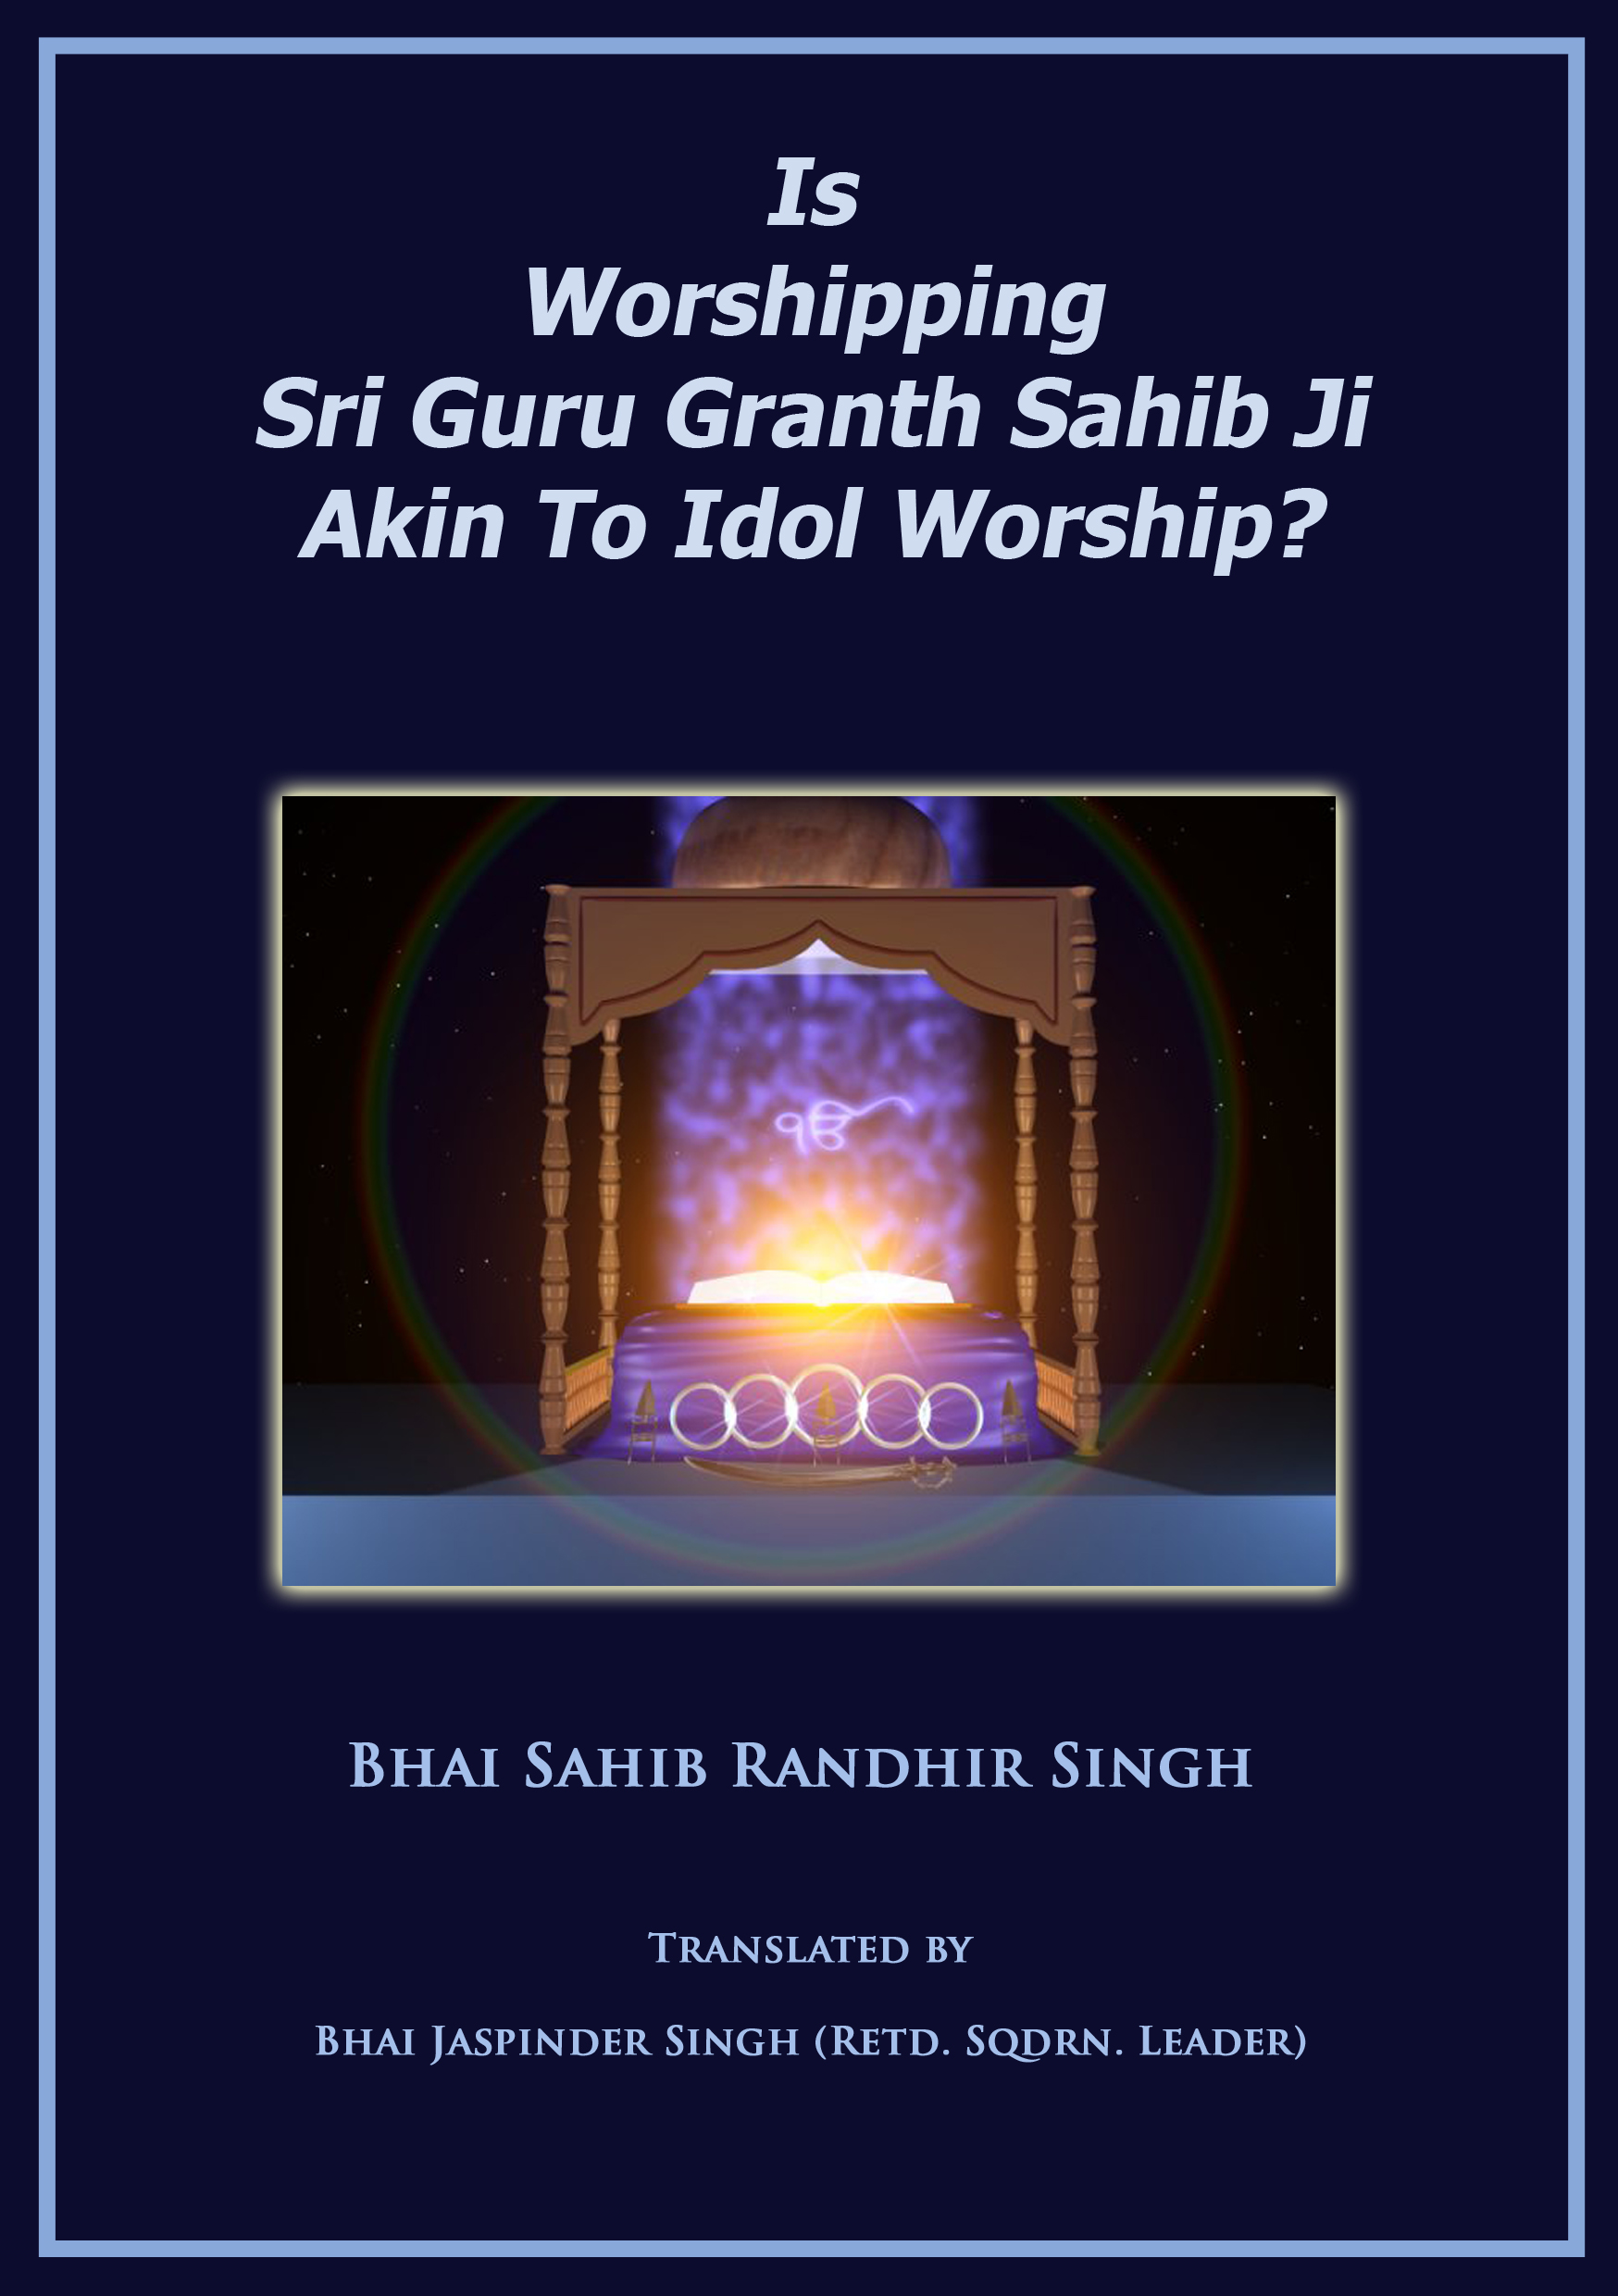 Is Worshipping Sri Guru Granth Sahib Ji Akin To Idol Worship?